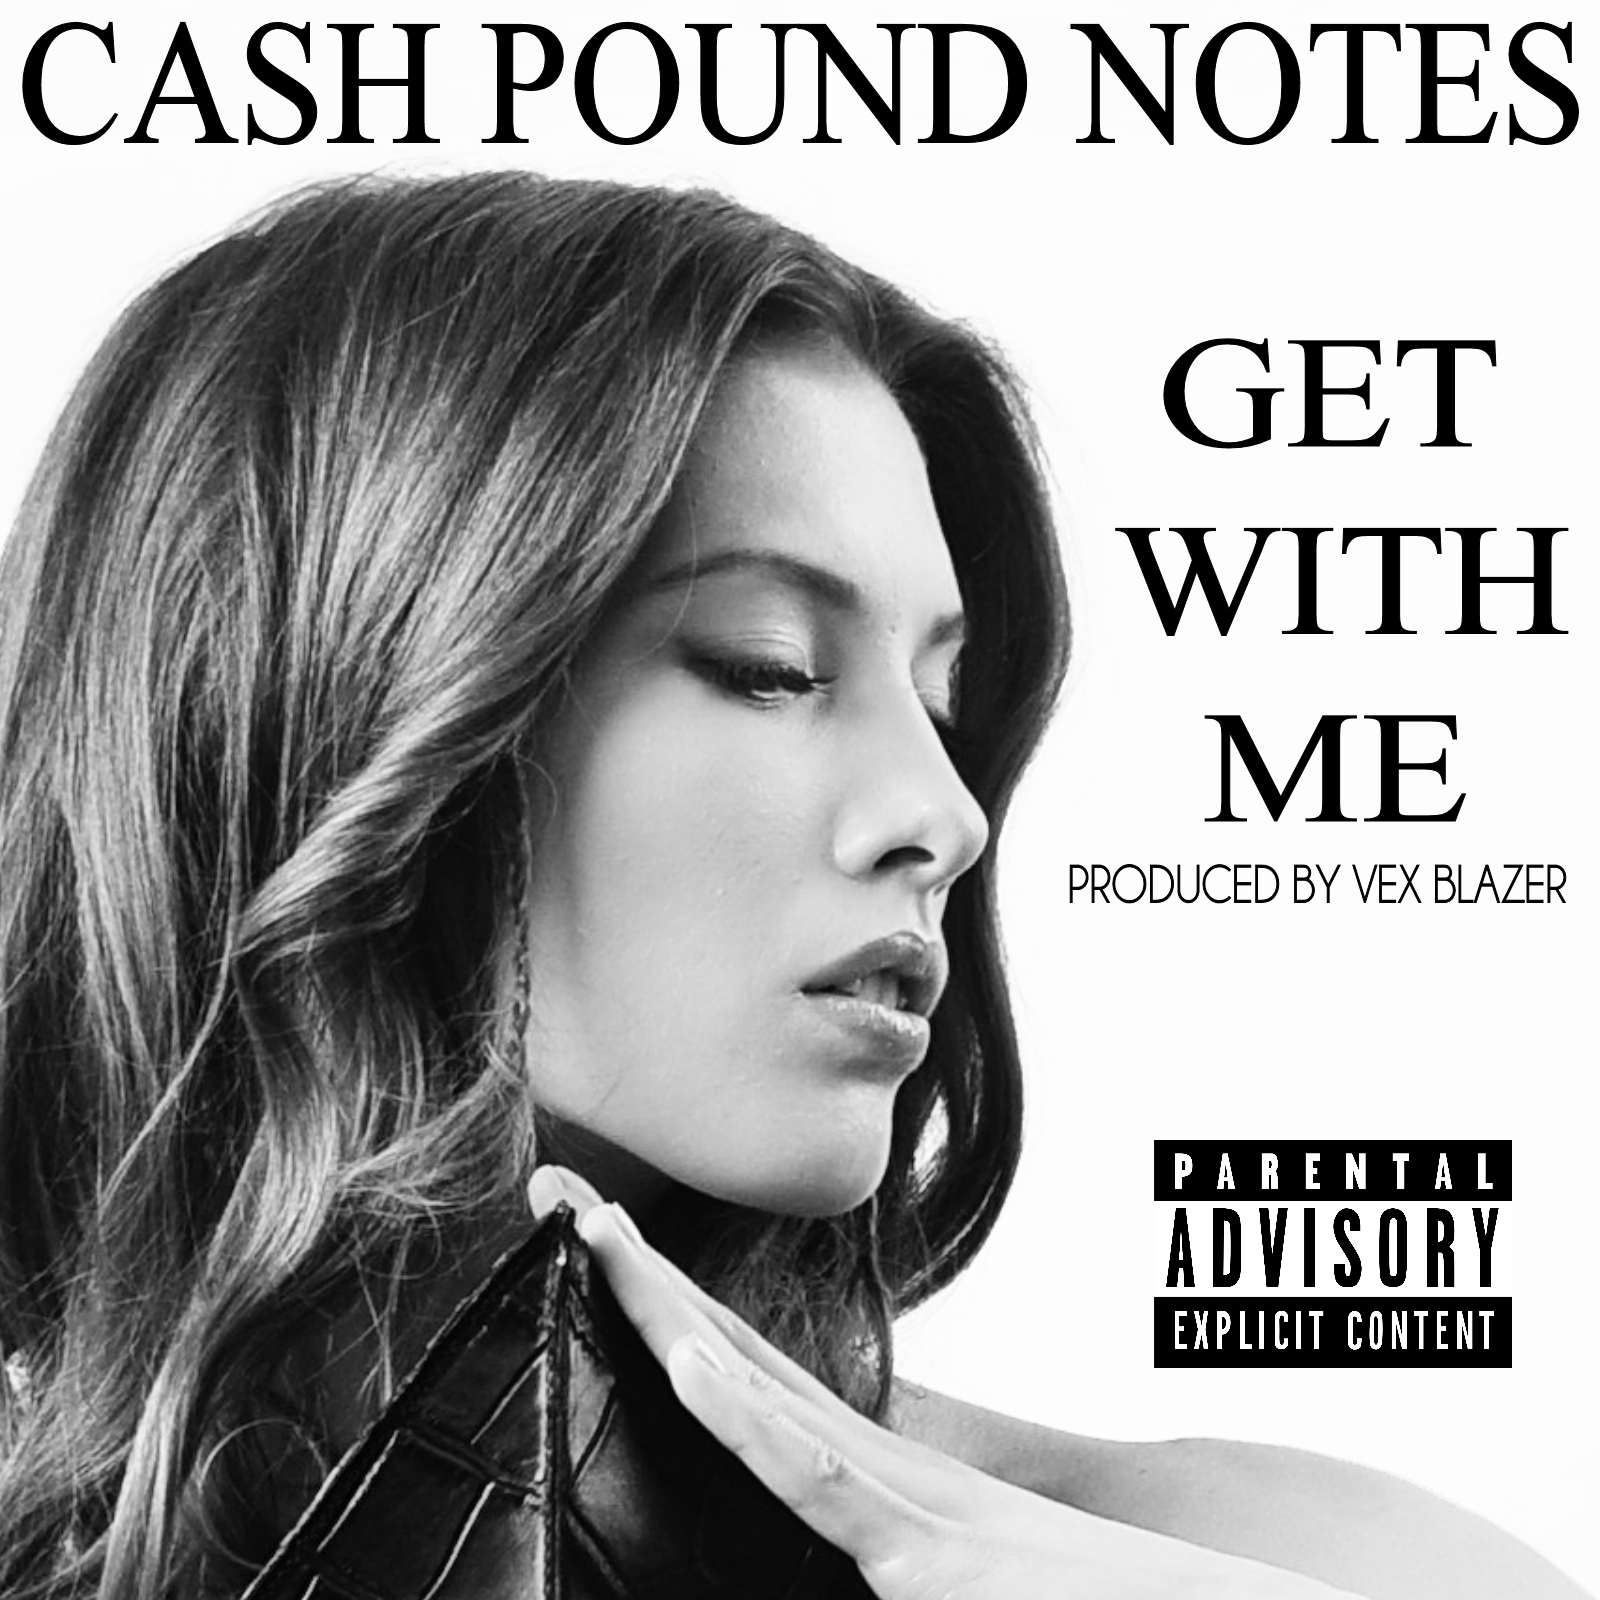 Cash Pound Notes - Get With Me